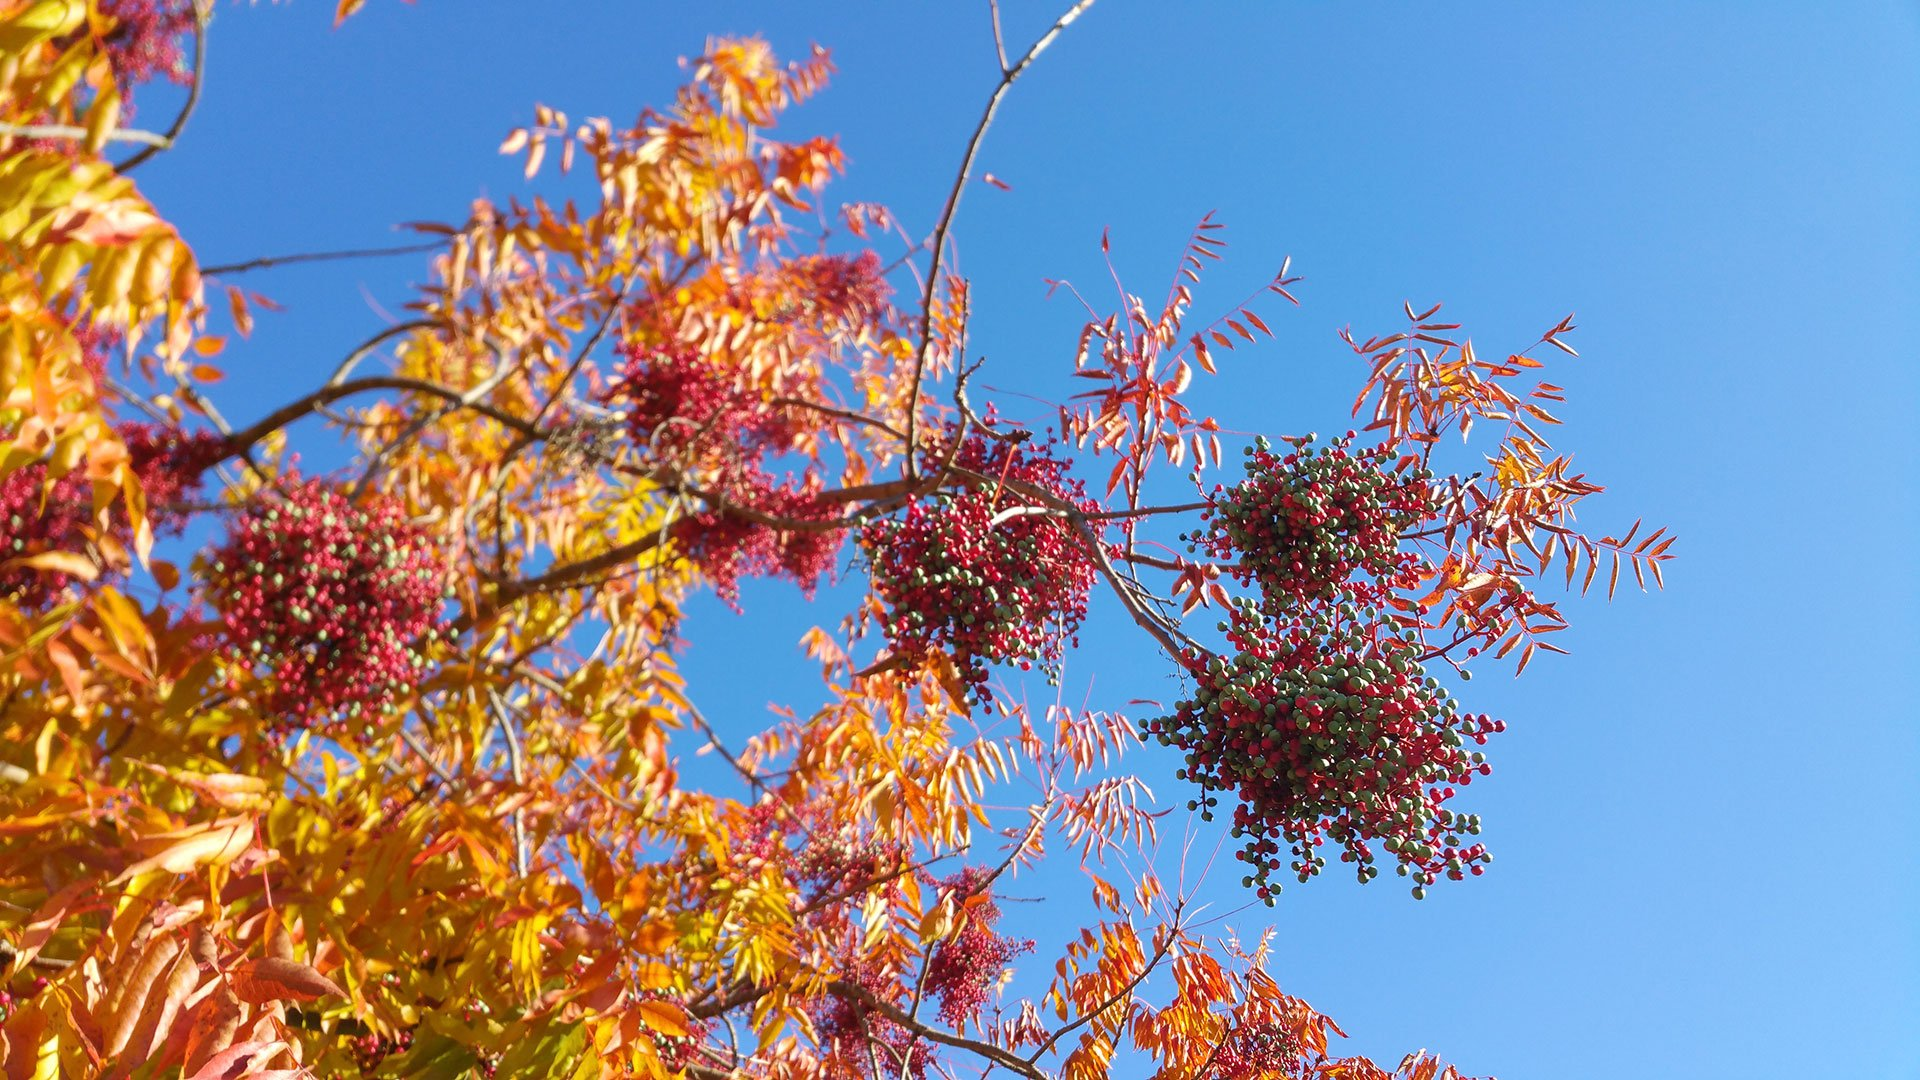 Yellow orange Fall foliage of a pepper tree with berries going from green to red against a pale azure blue sky